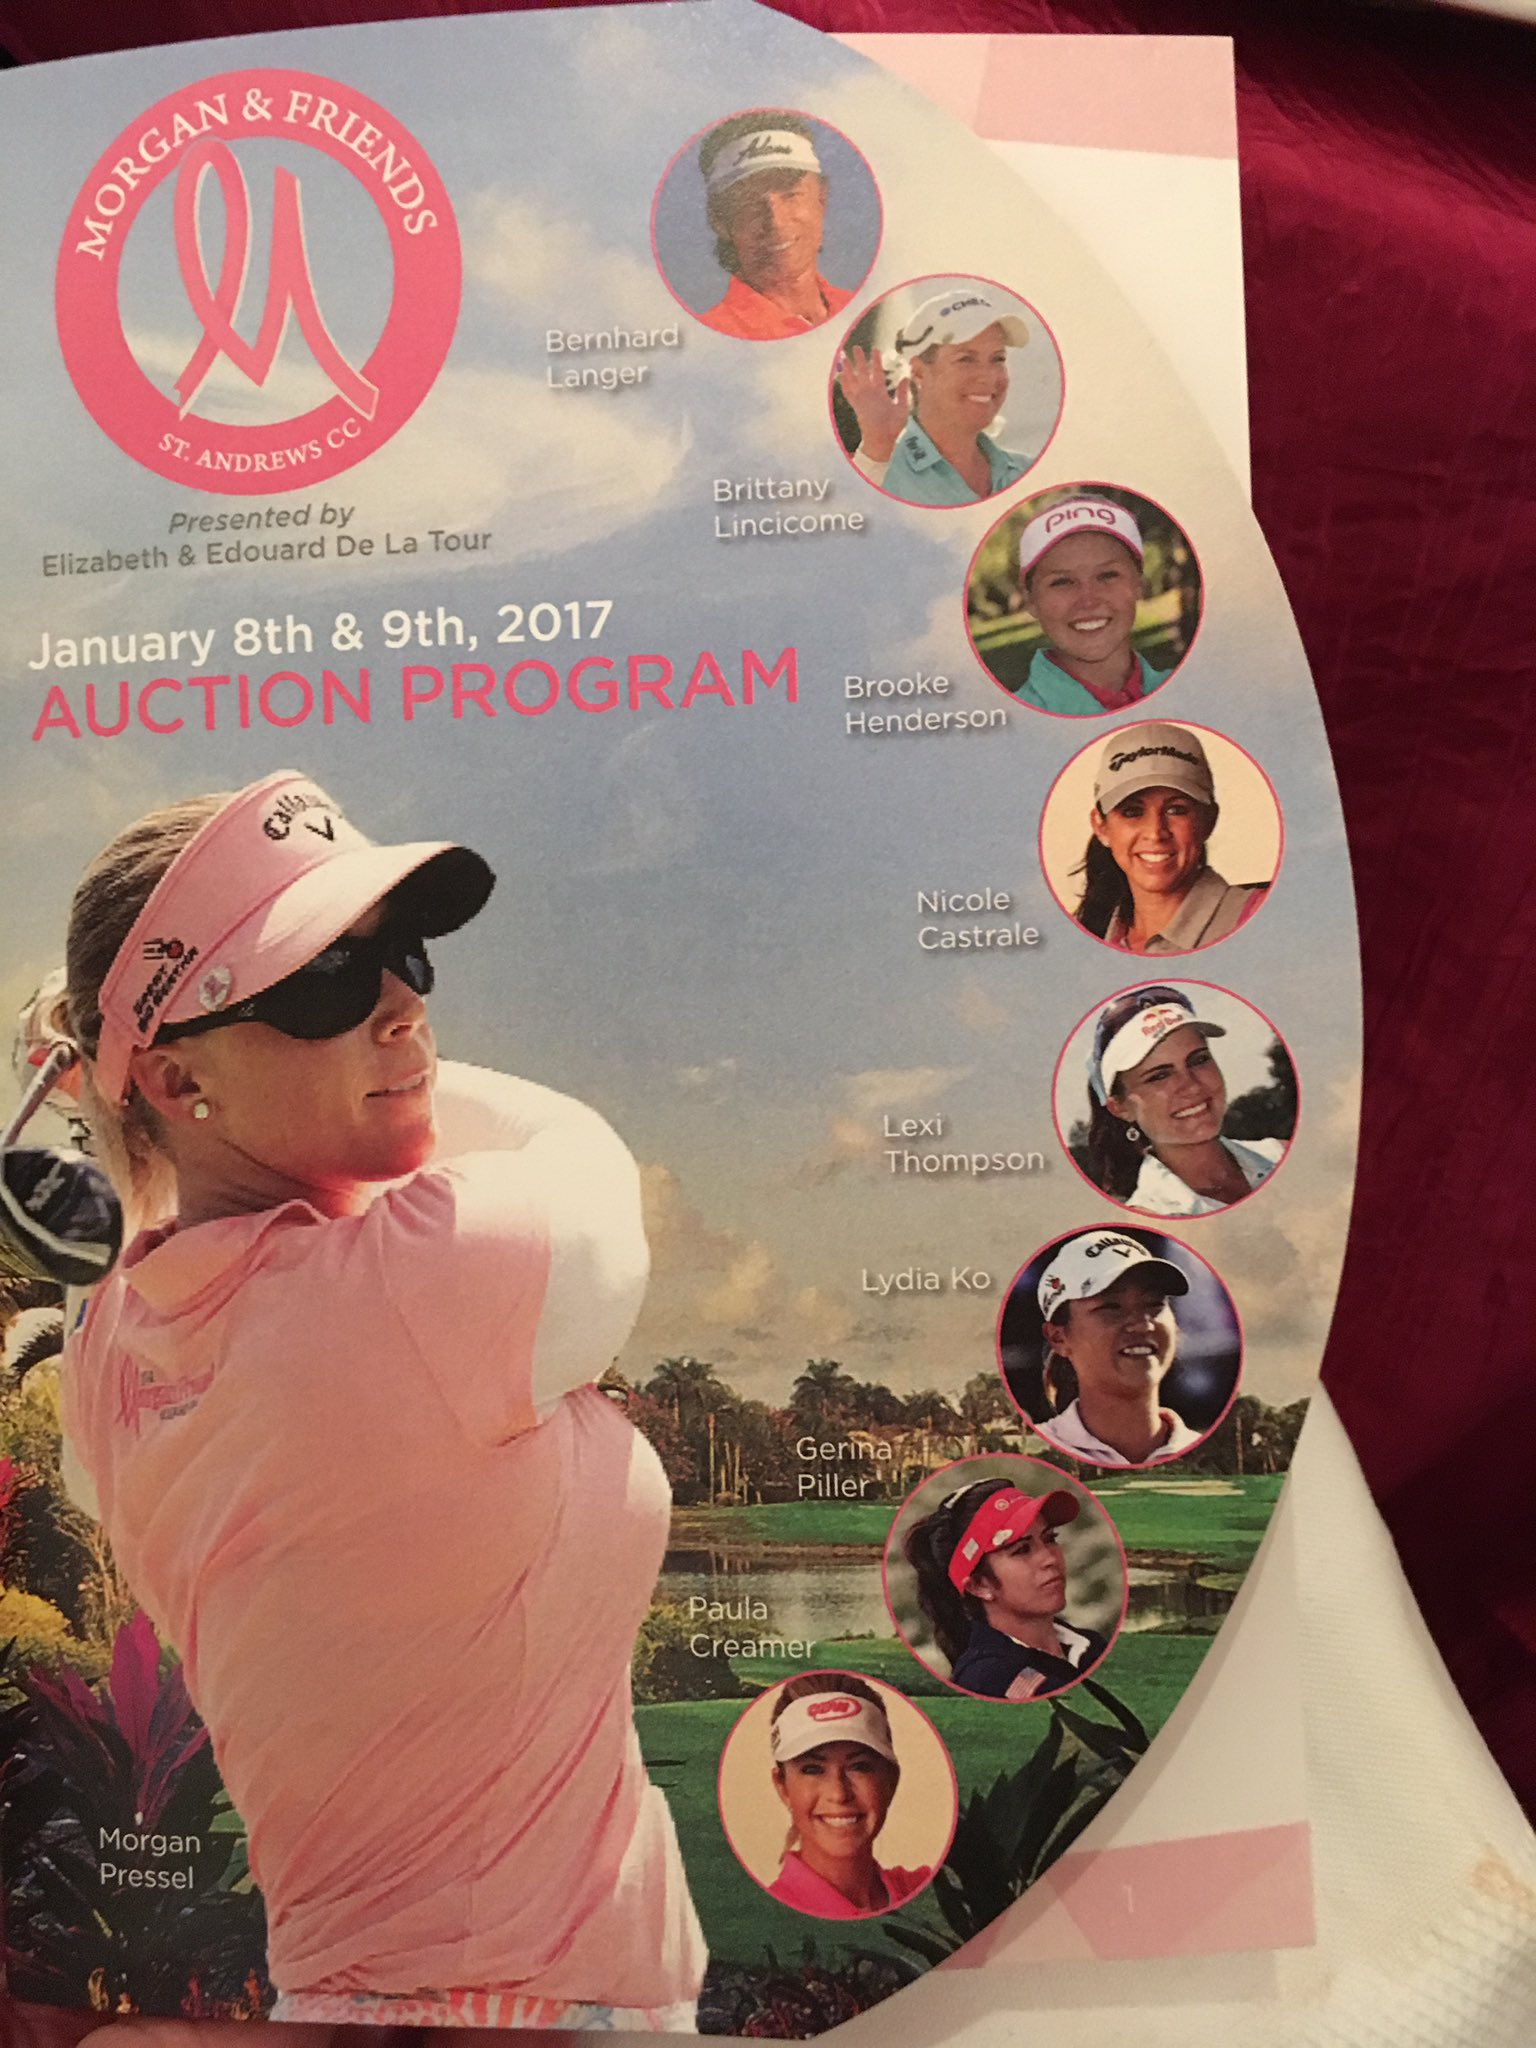 Incredible event! Congrats @MP_Foundation @mpressel !!@amgreetings wishes you the very best @LPGA #morganandfriends17 https://t.co/2BDWY6xgkz